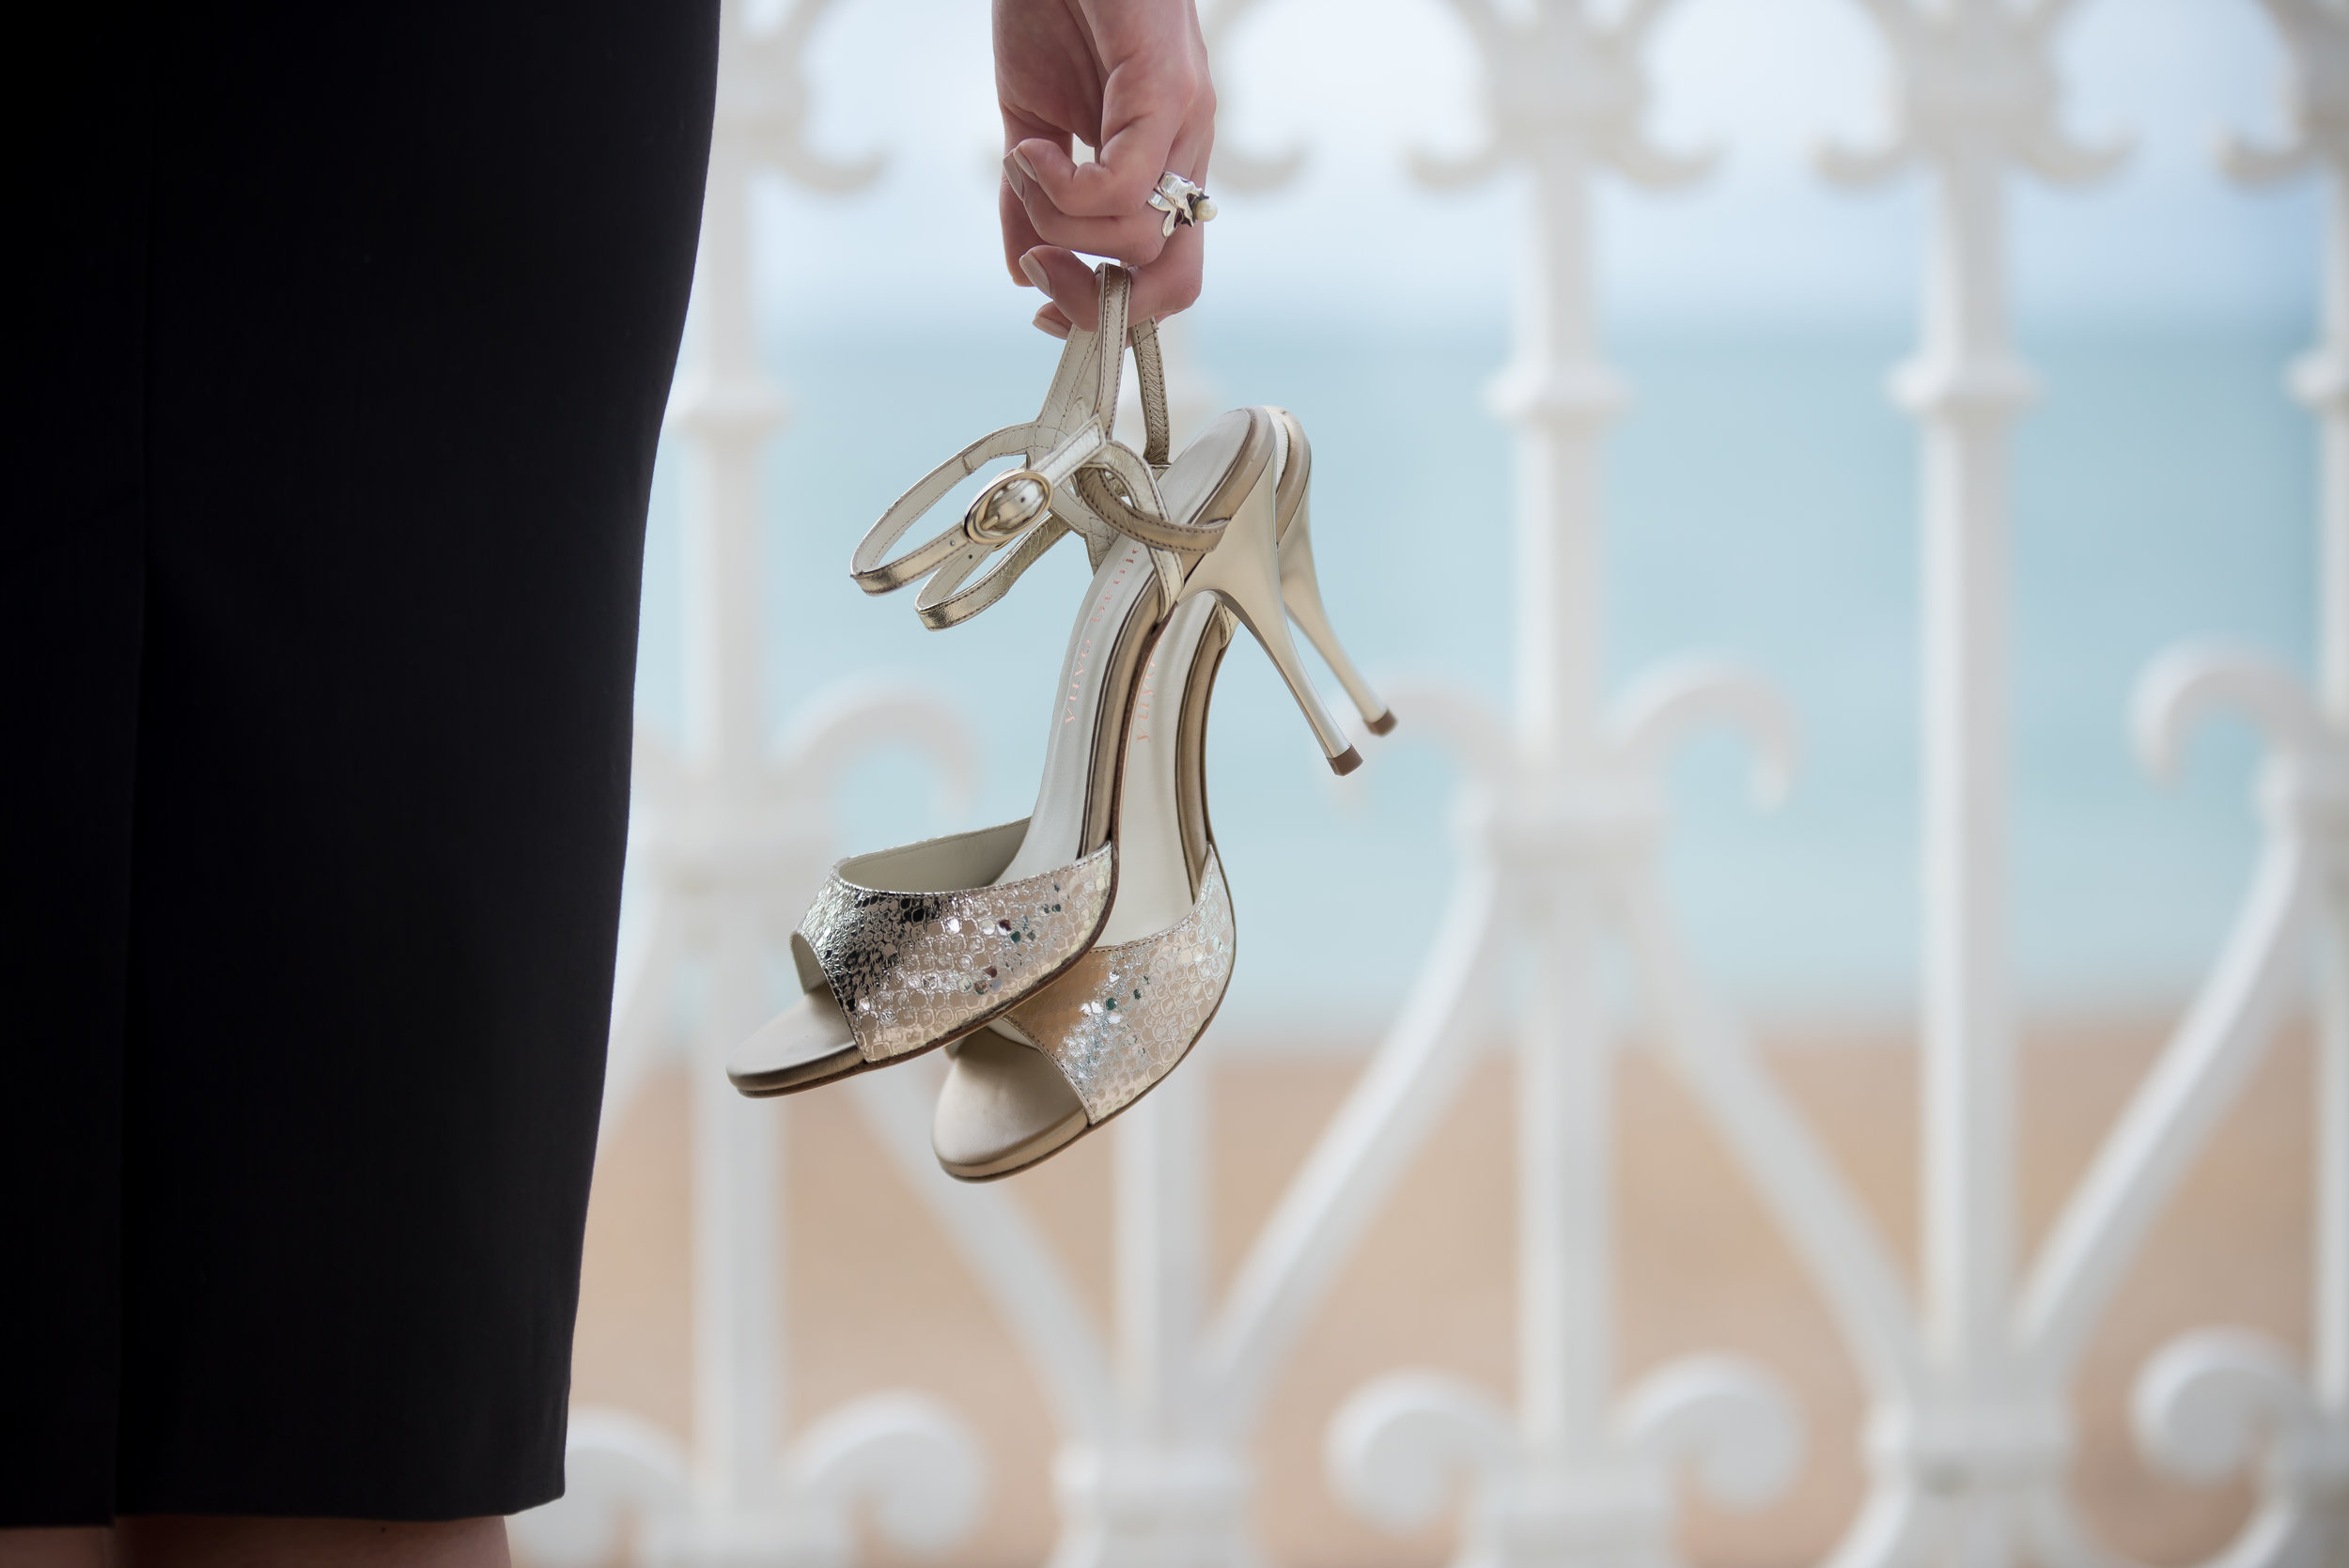 Tango shoes in Stefania's hand